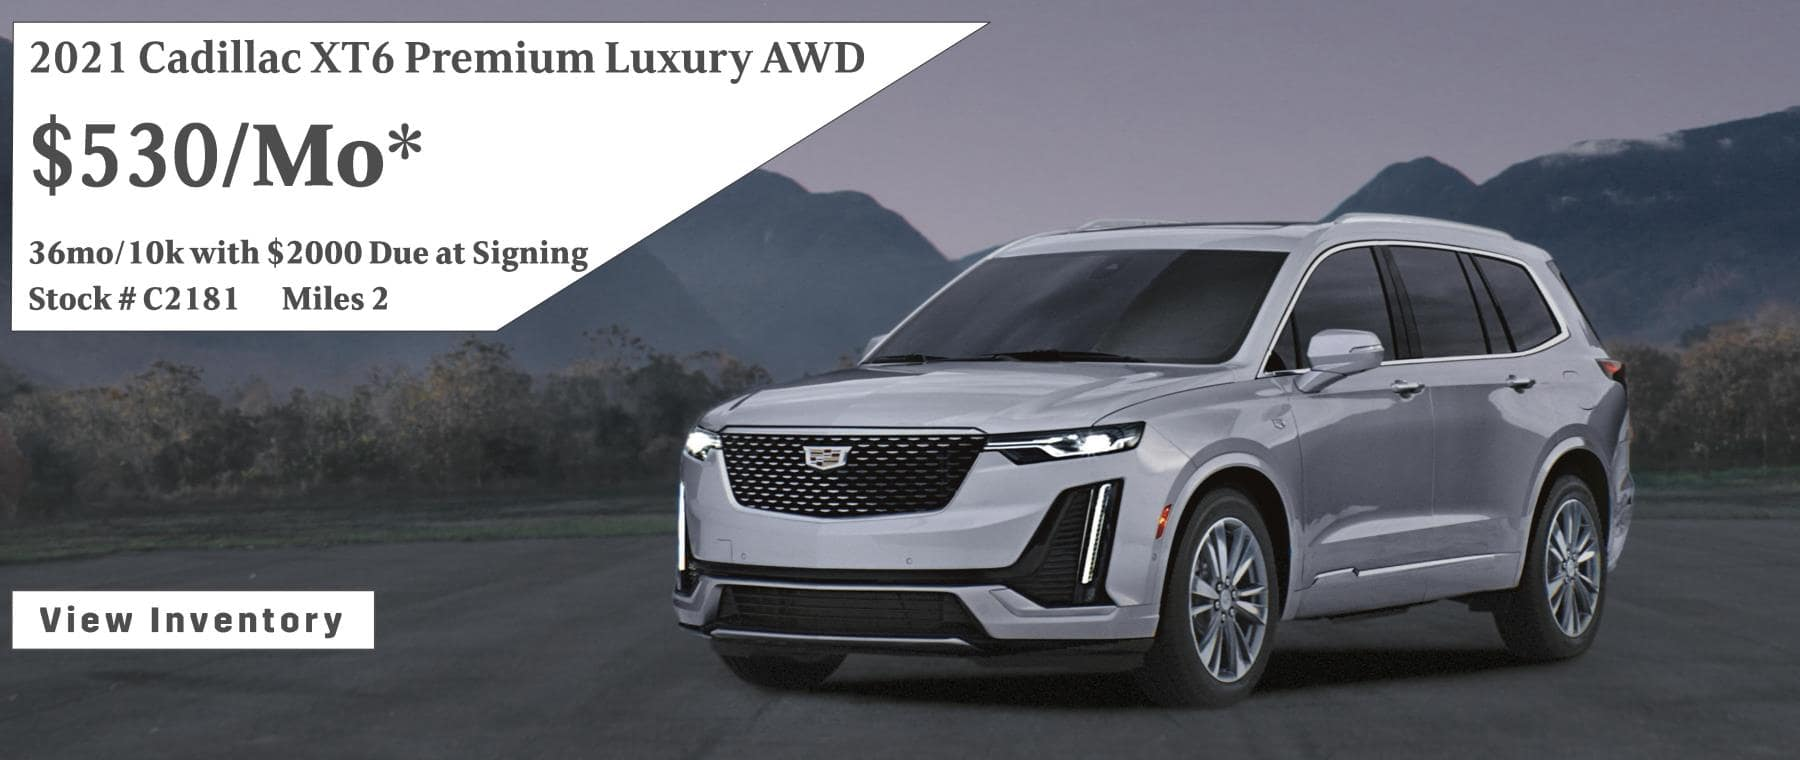 June 2021 Cadillac XT6 Lease Special $530/mo*